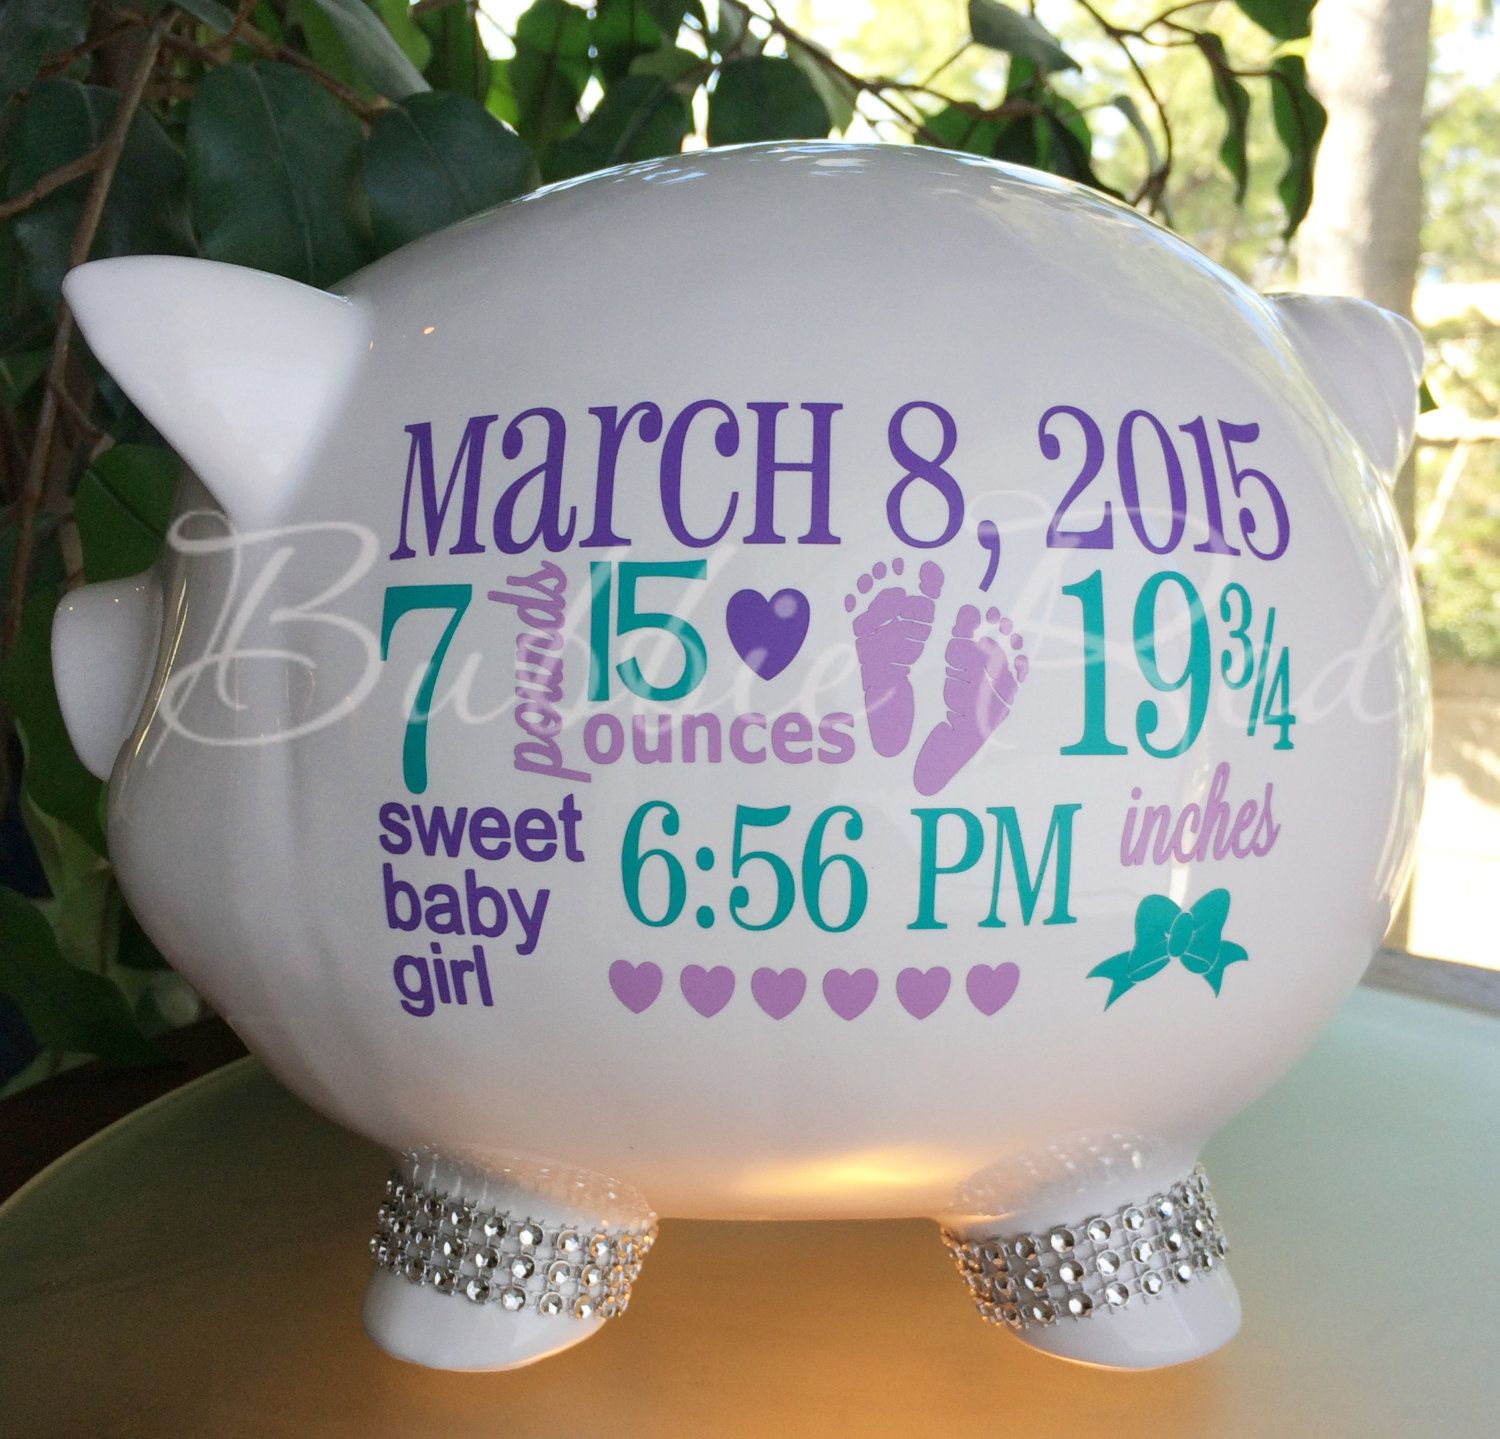 Personalized piggy bank custom baby birth stats gift baby girl personalized piggy bank baby birth stats gift baby girl piggy bank baby girl negle Gallery